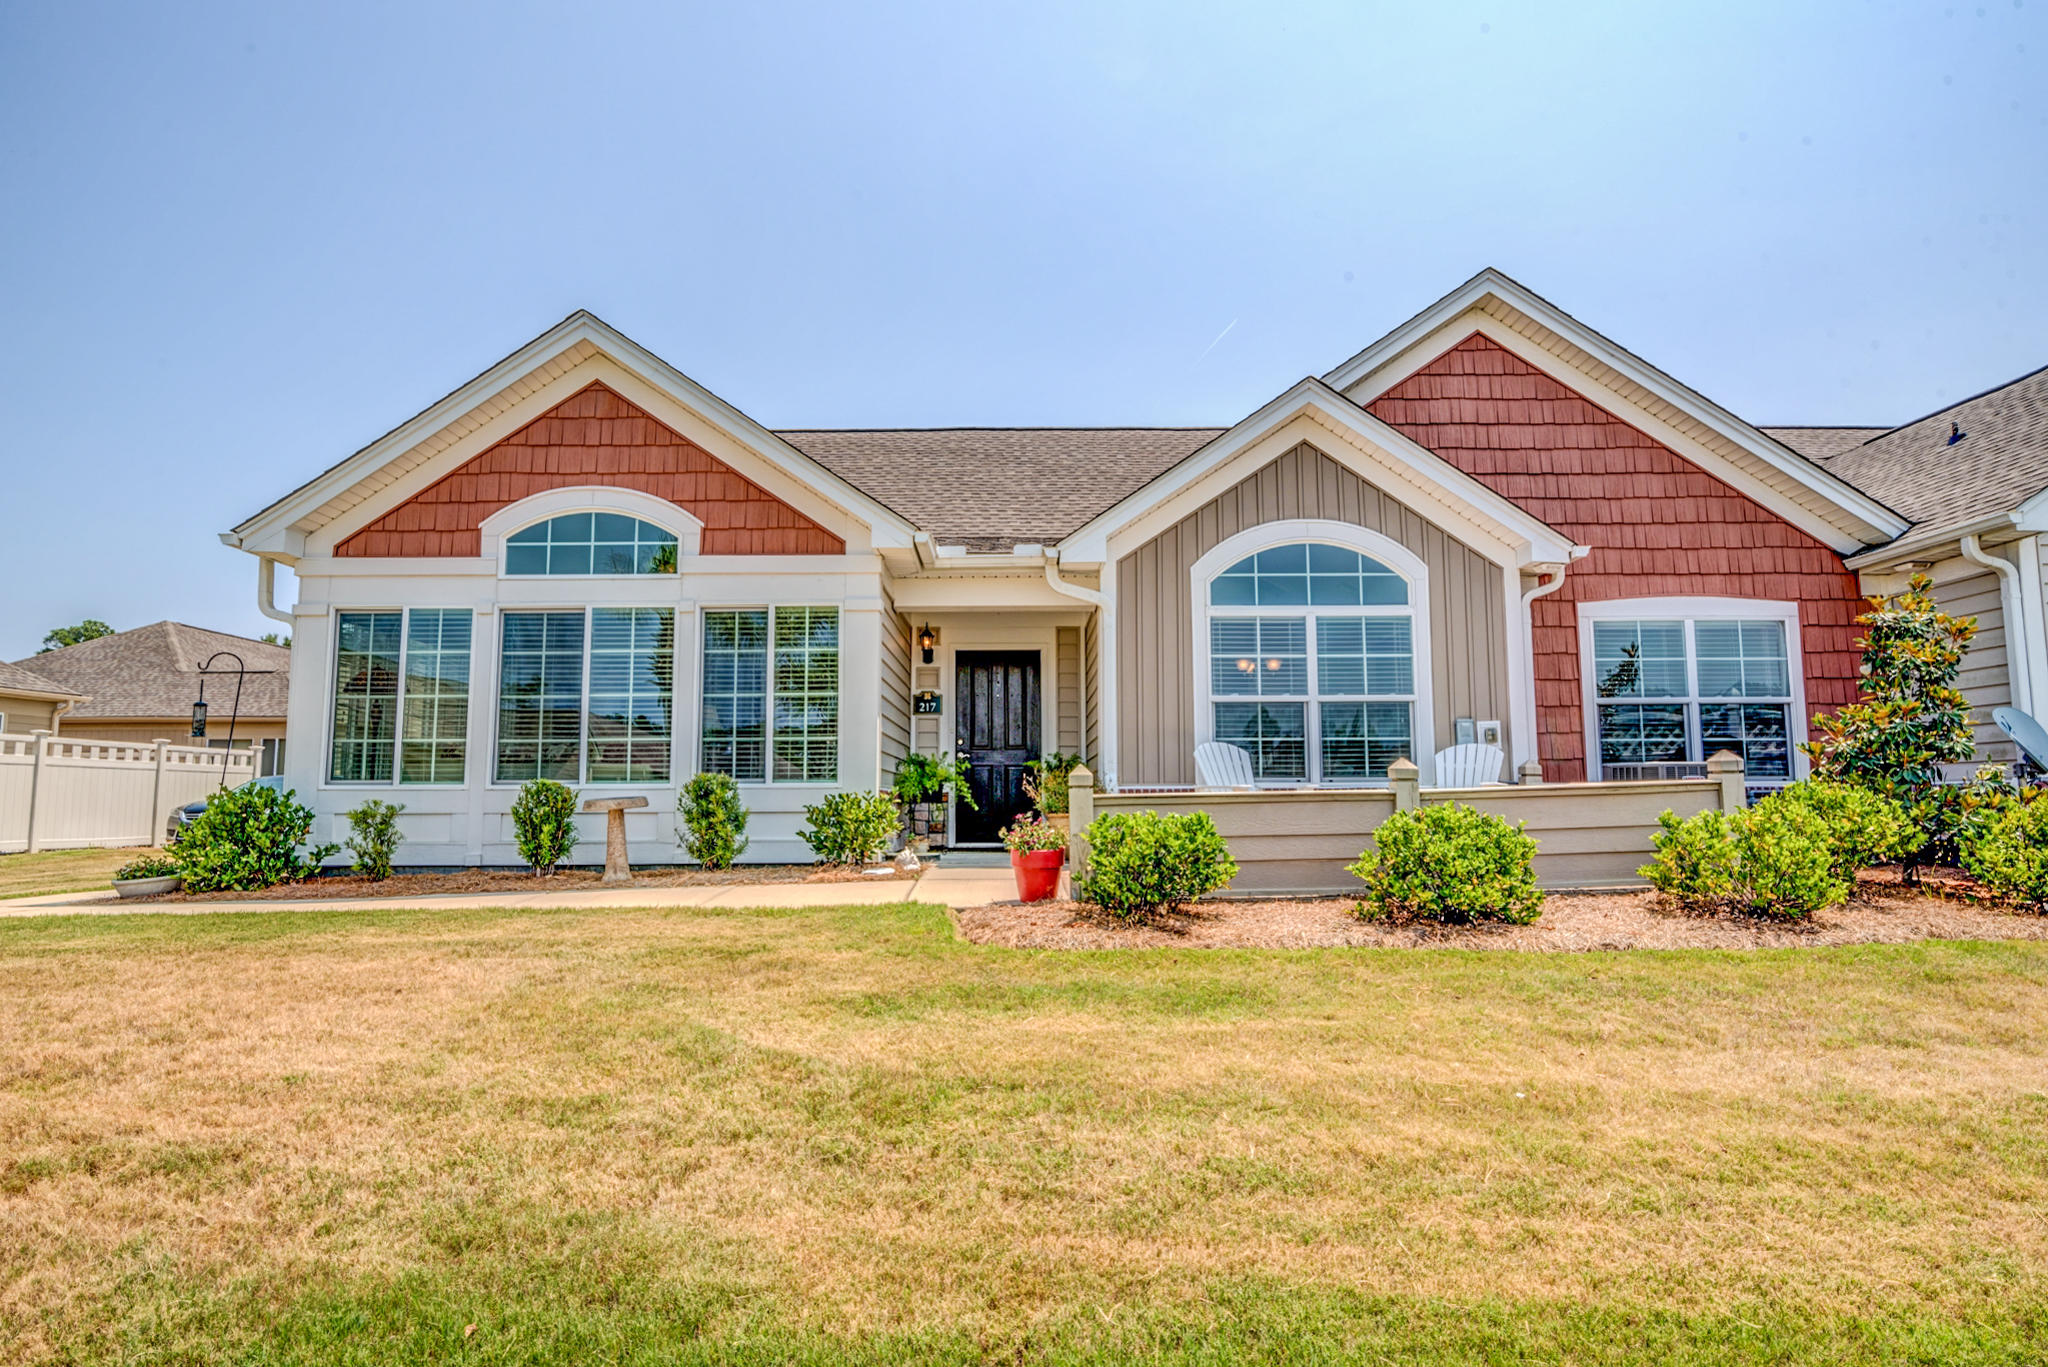 217 Village Stone Circle Summerville, Sc 29486